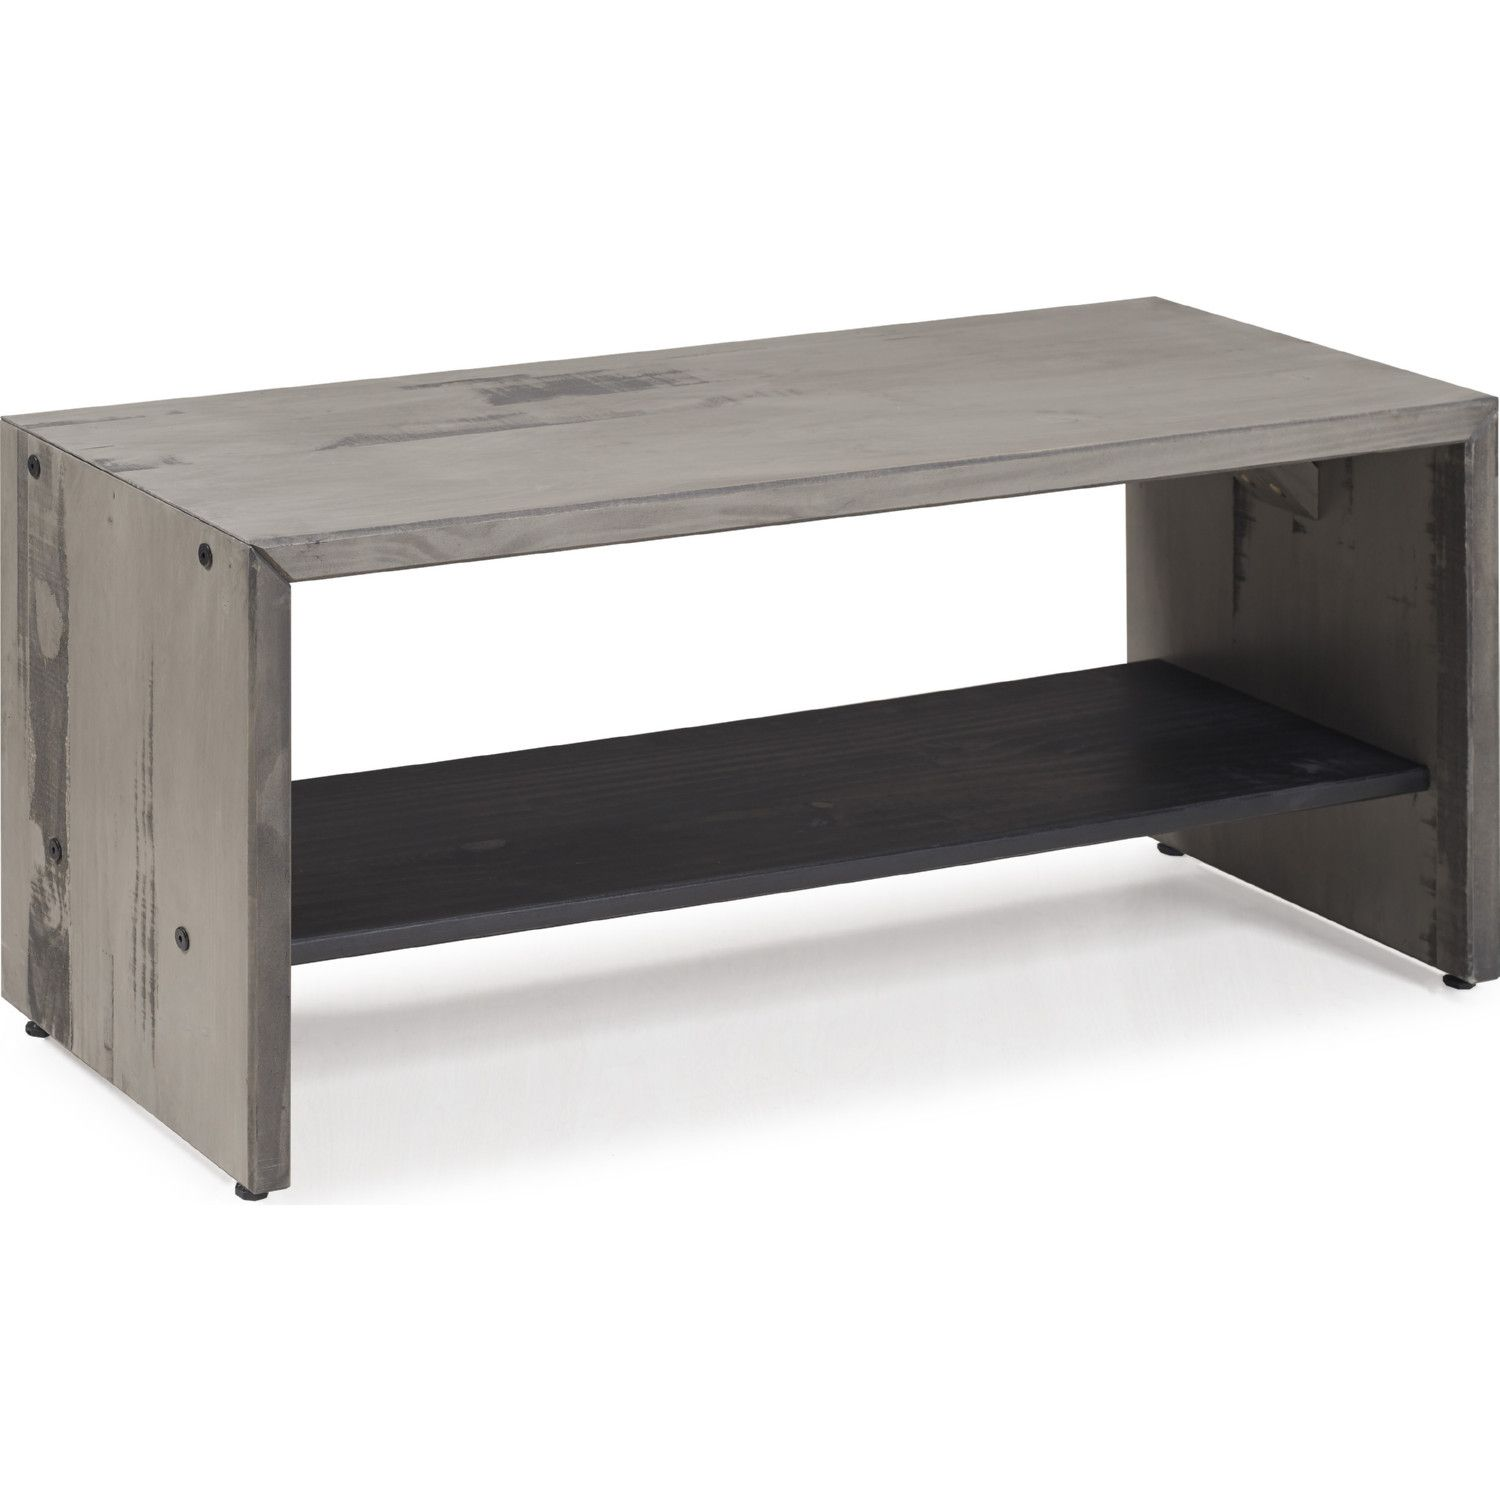 42 Rustic Entryway Bench In Grey Reclaimed Finish Solid Pine By